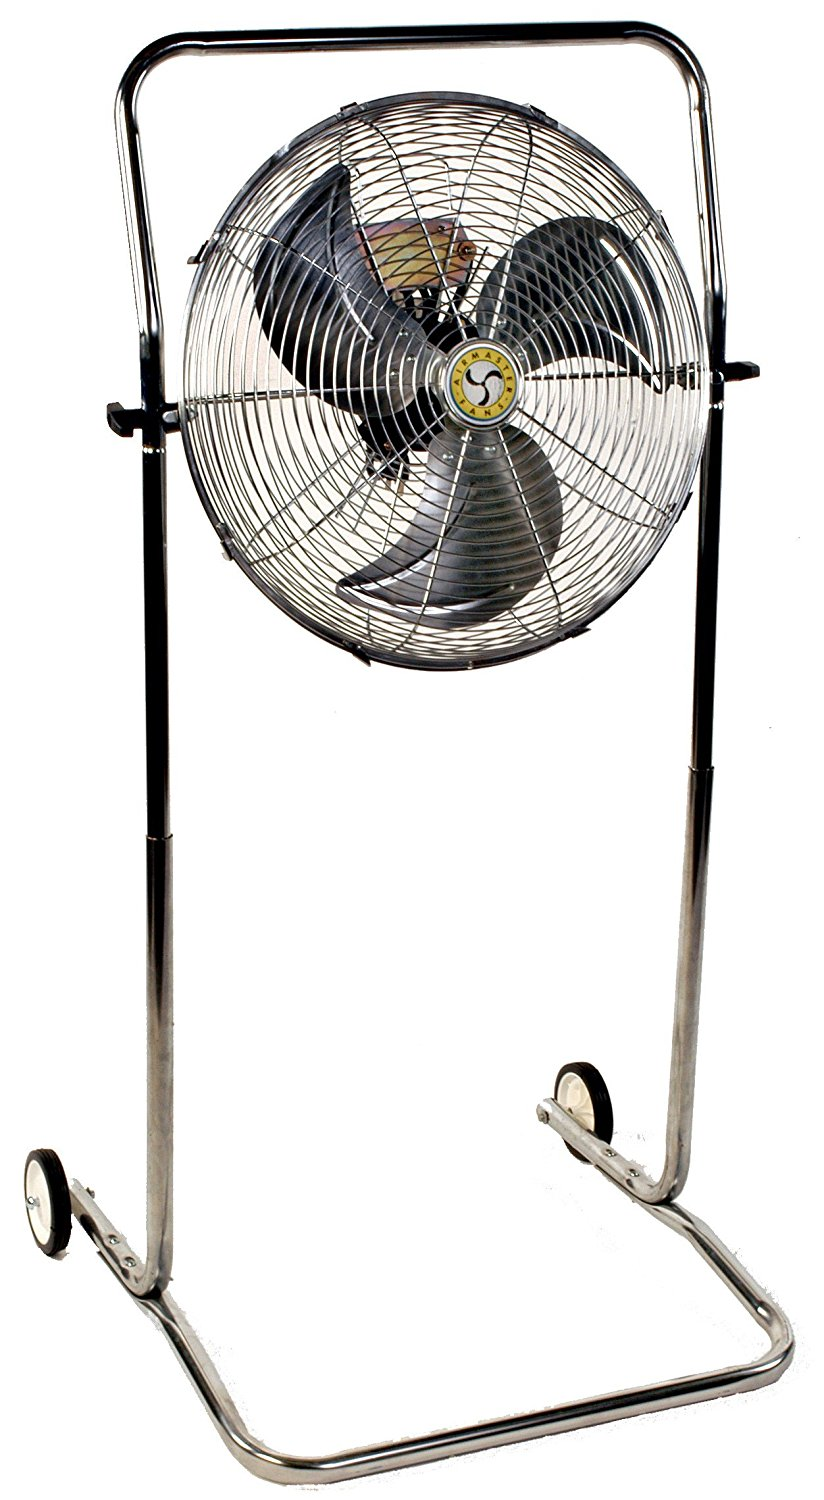 Cheap Airmaster Fan, find Airmaster Fan deals on line at Alibaba com